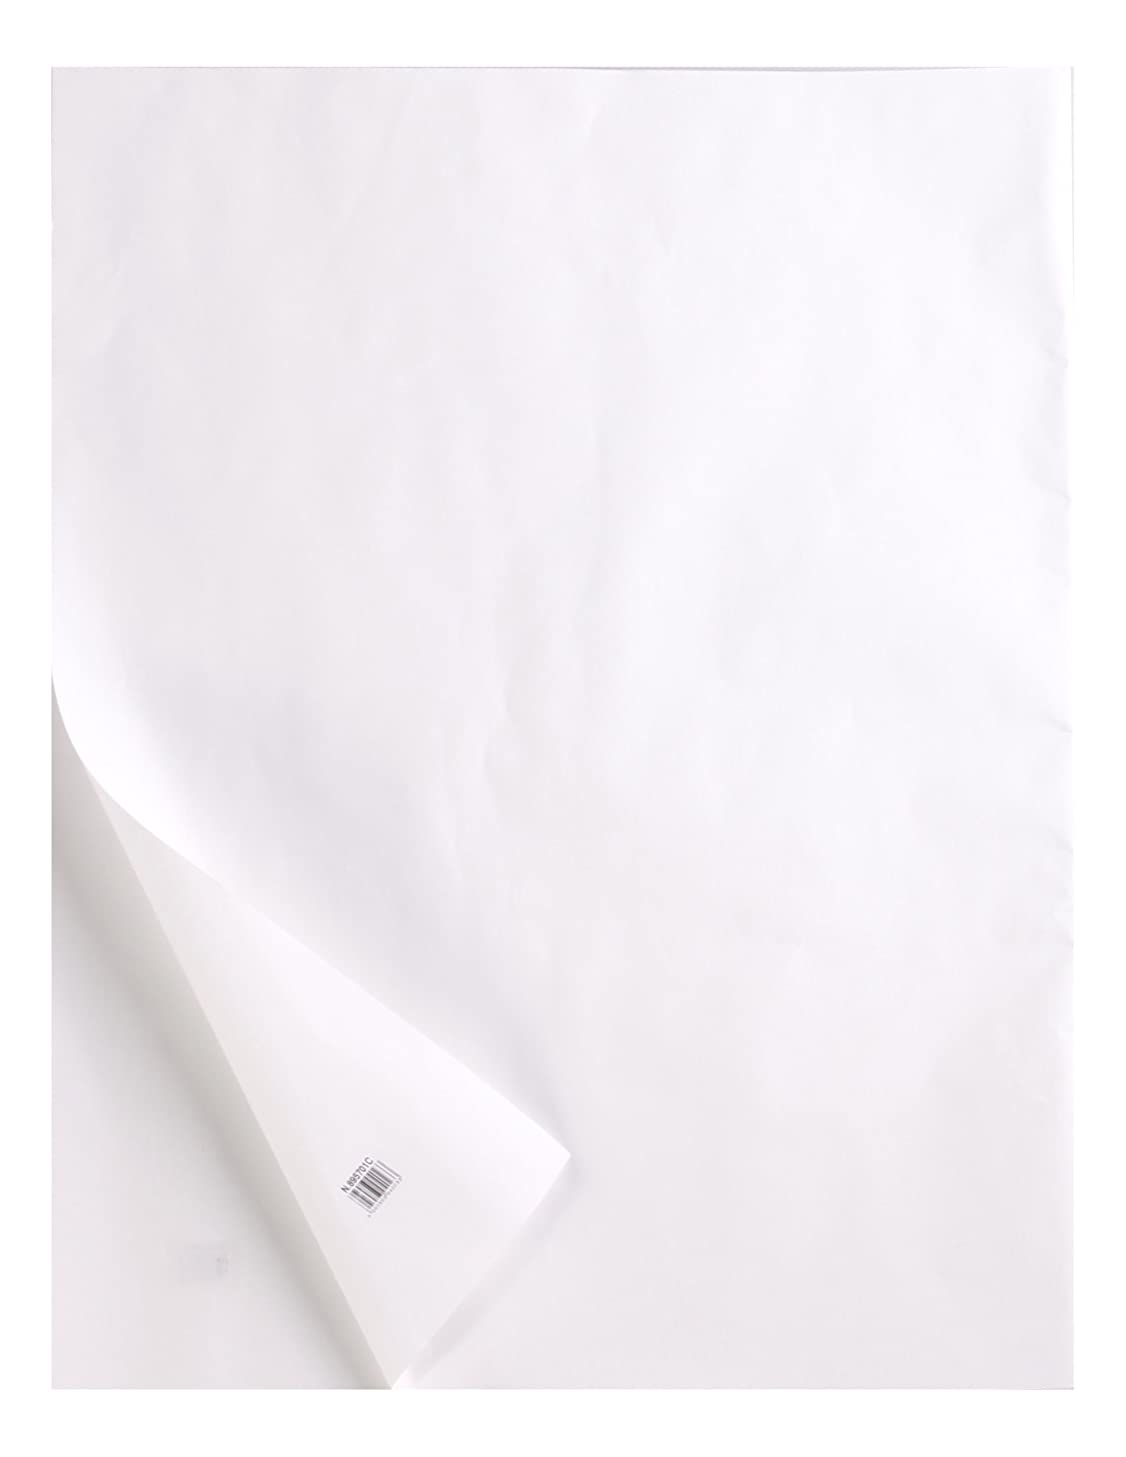 Clairefontaine 50 x 65 cm Tracing Paper, 400 g, 10 Sheets